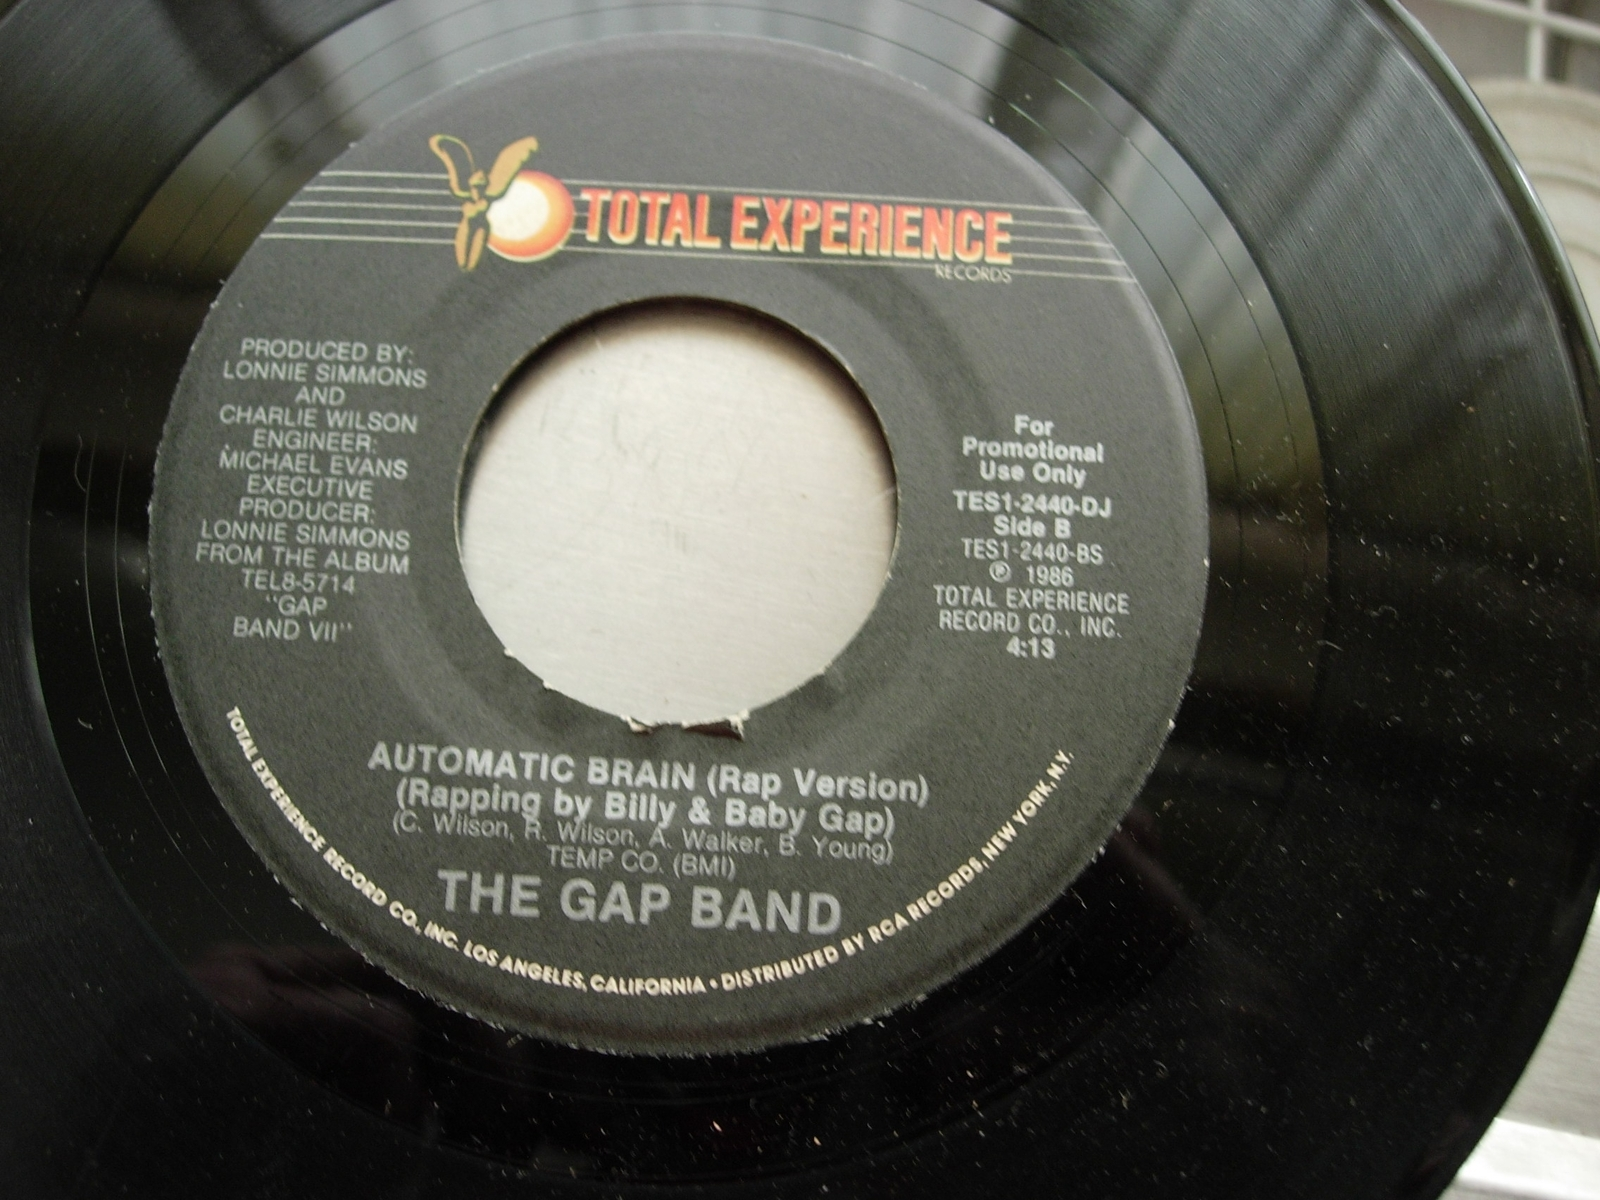 Gap Band - Automatic Brain - Total Experience 2440-DJ